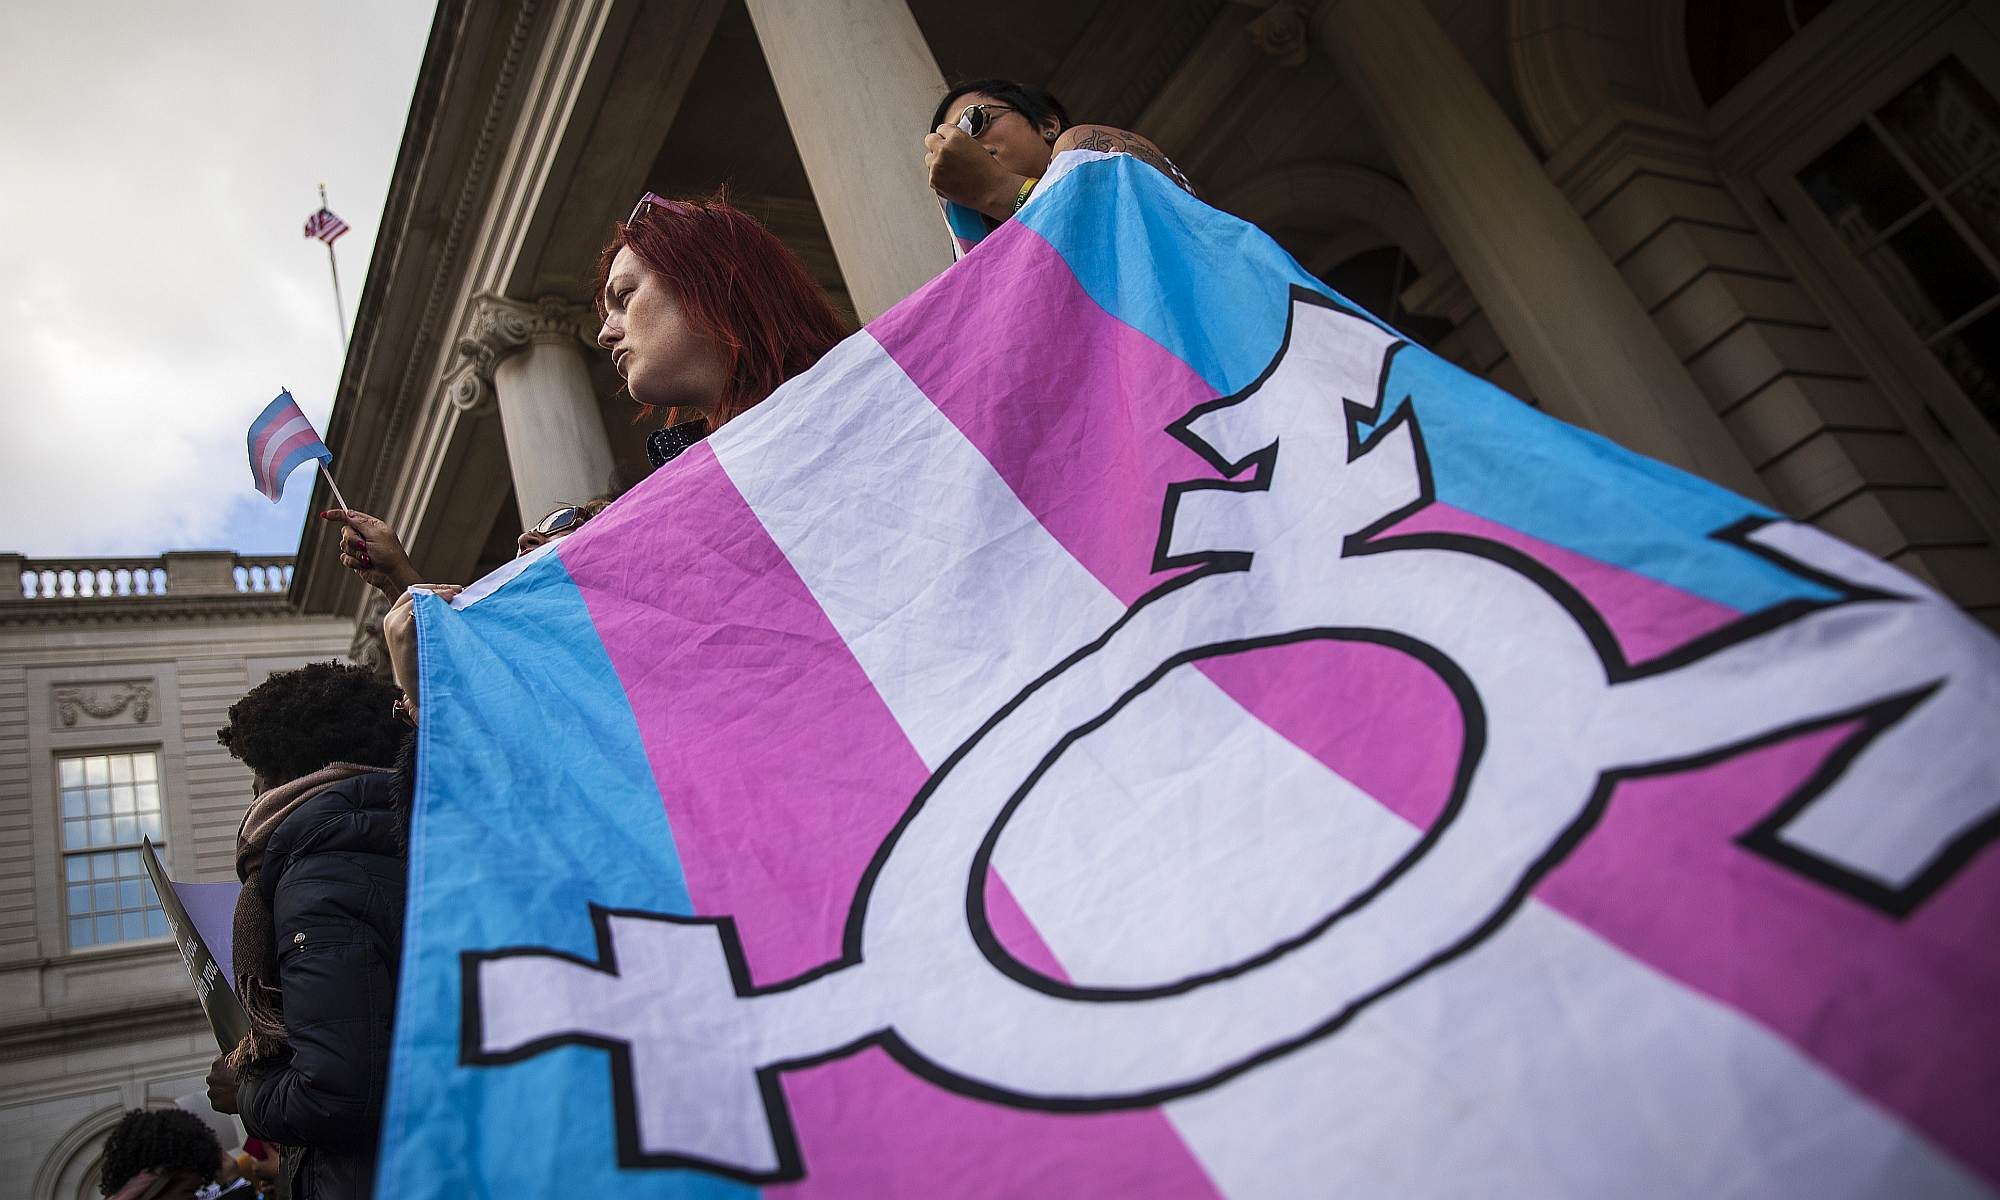 Do women not have rights on campus?